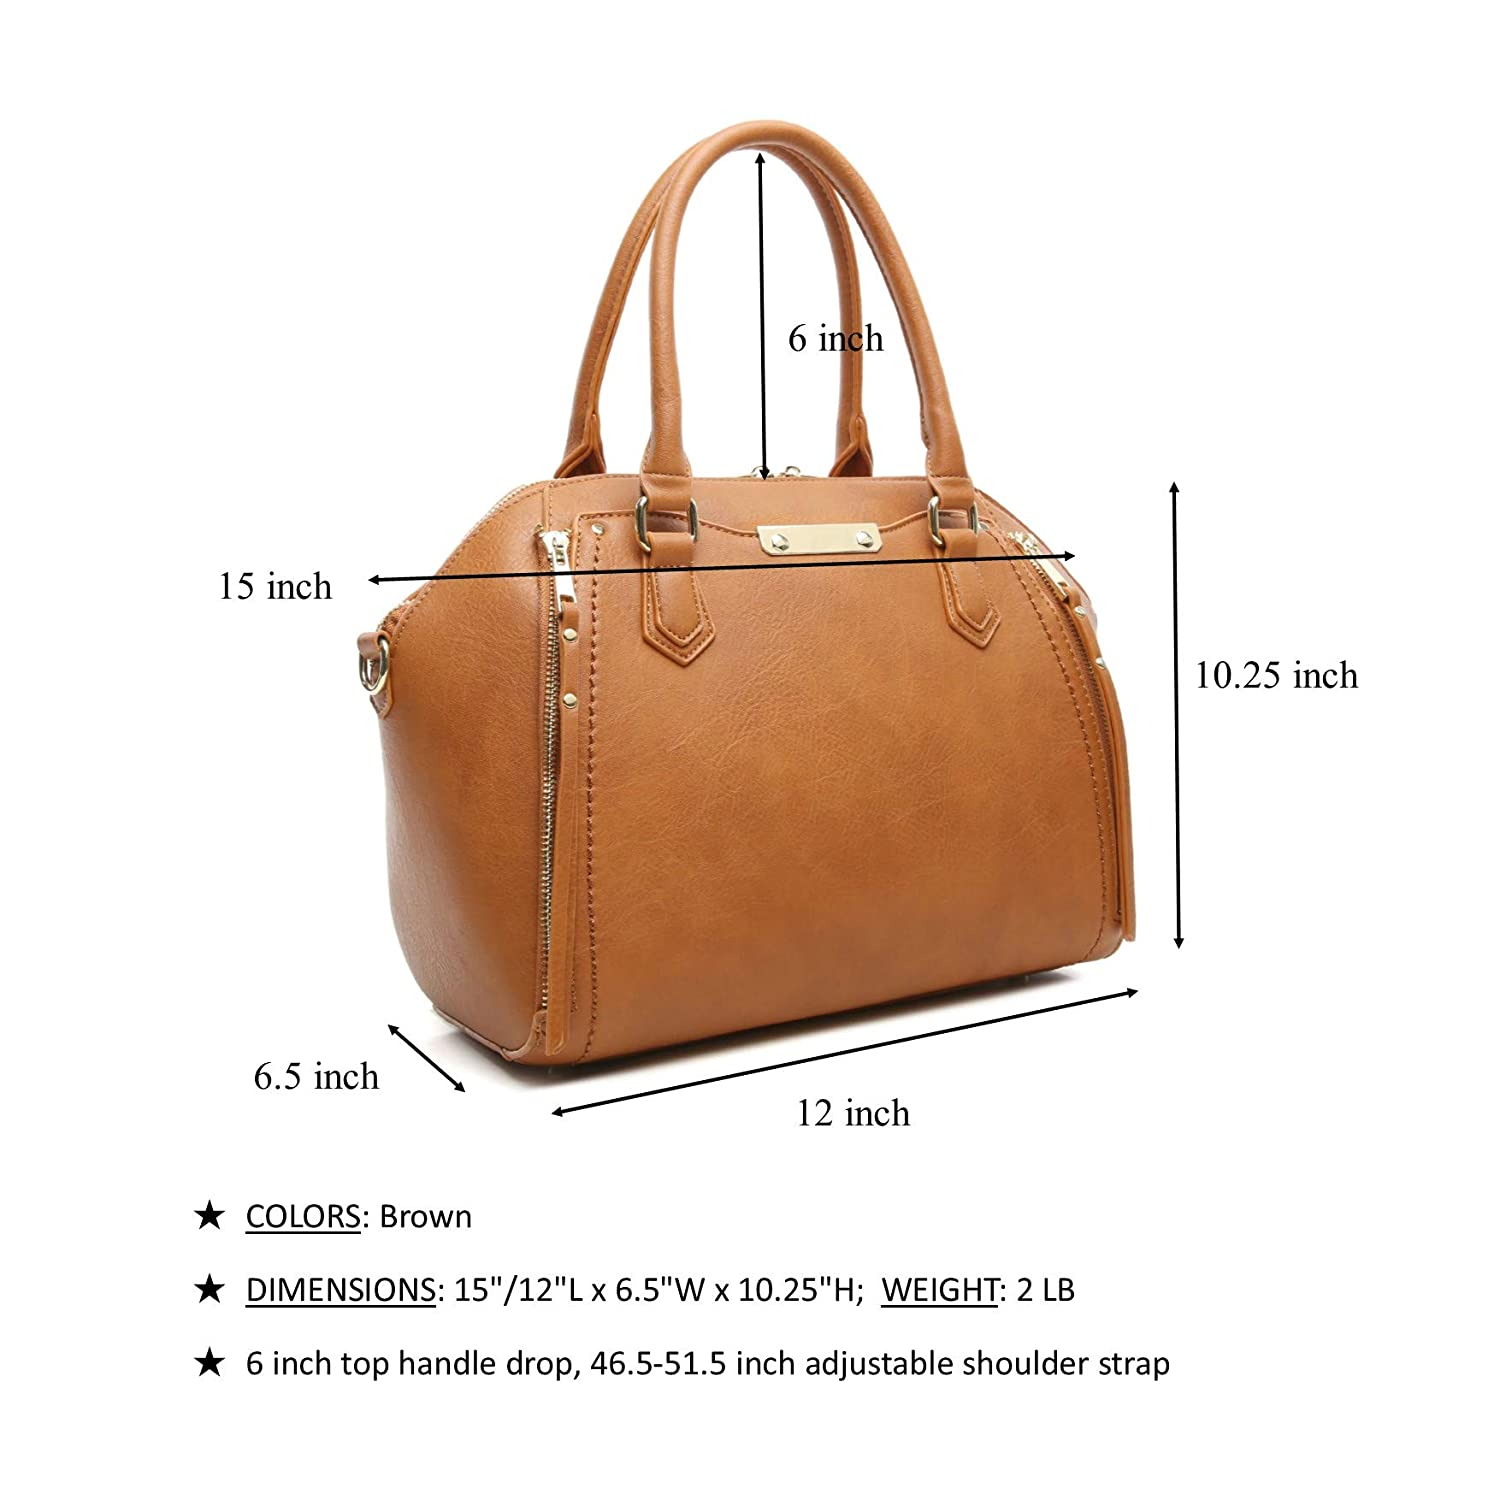 202b7c8cc7 Amazon.com  Aitbags Purses and Handbags for Women Tote with Shoulder Strap  Big Crossbody Bag Brown  Shoes